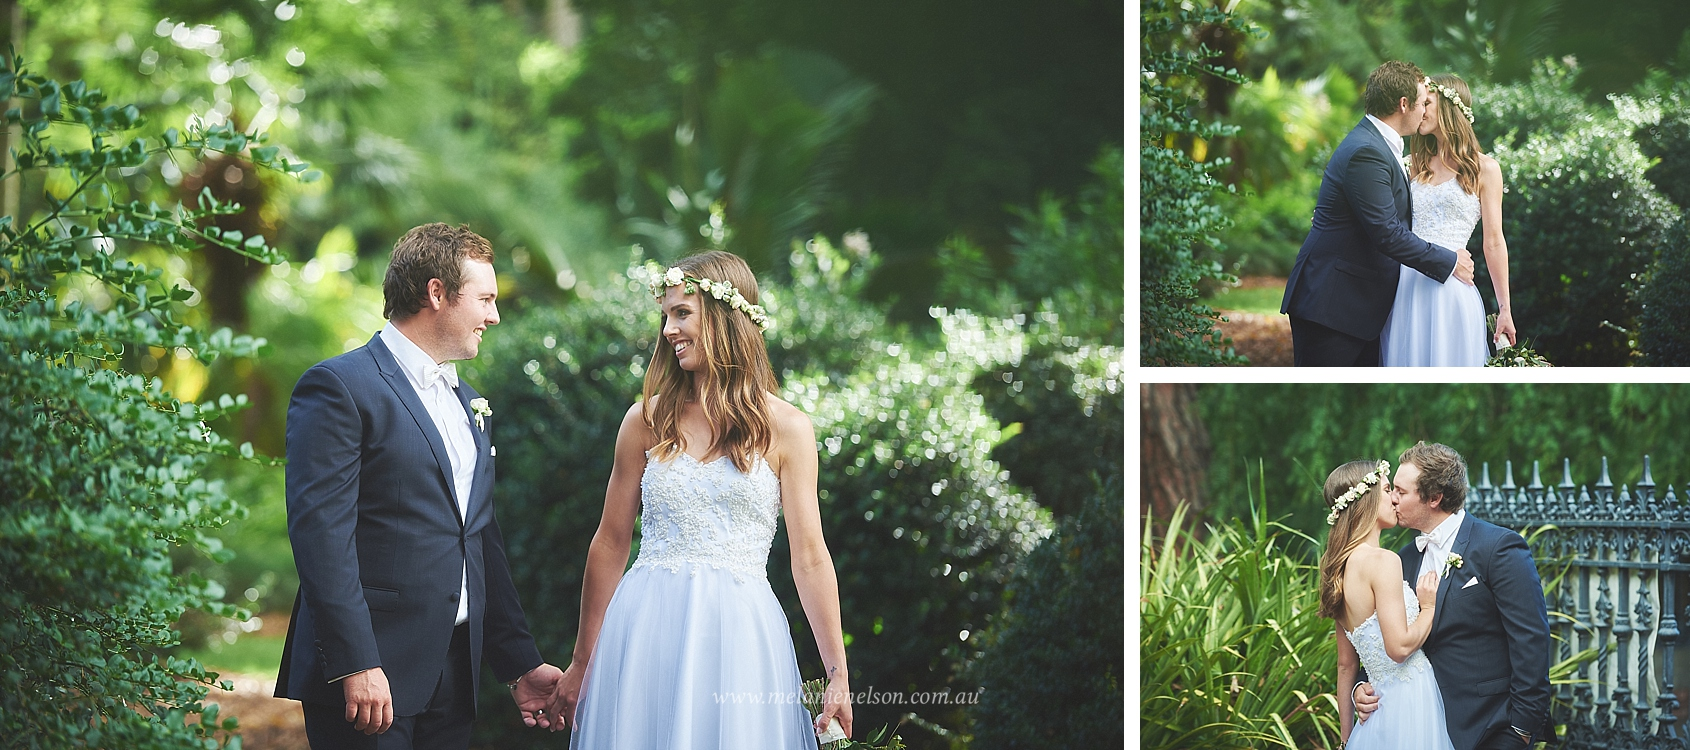 adelaide_botanic_gardens_wedding_photography14.jpg